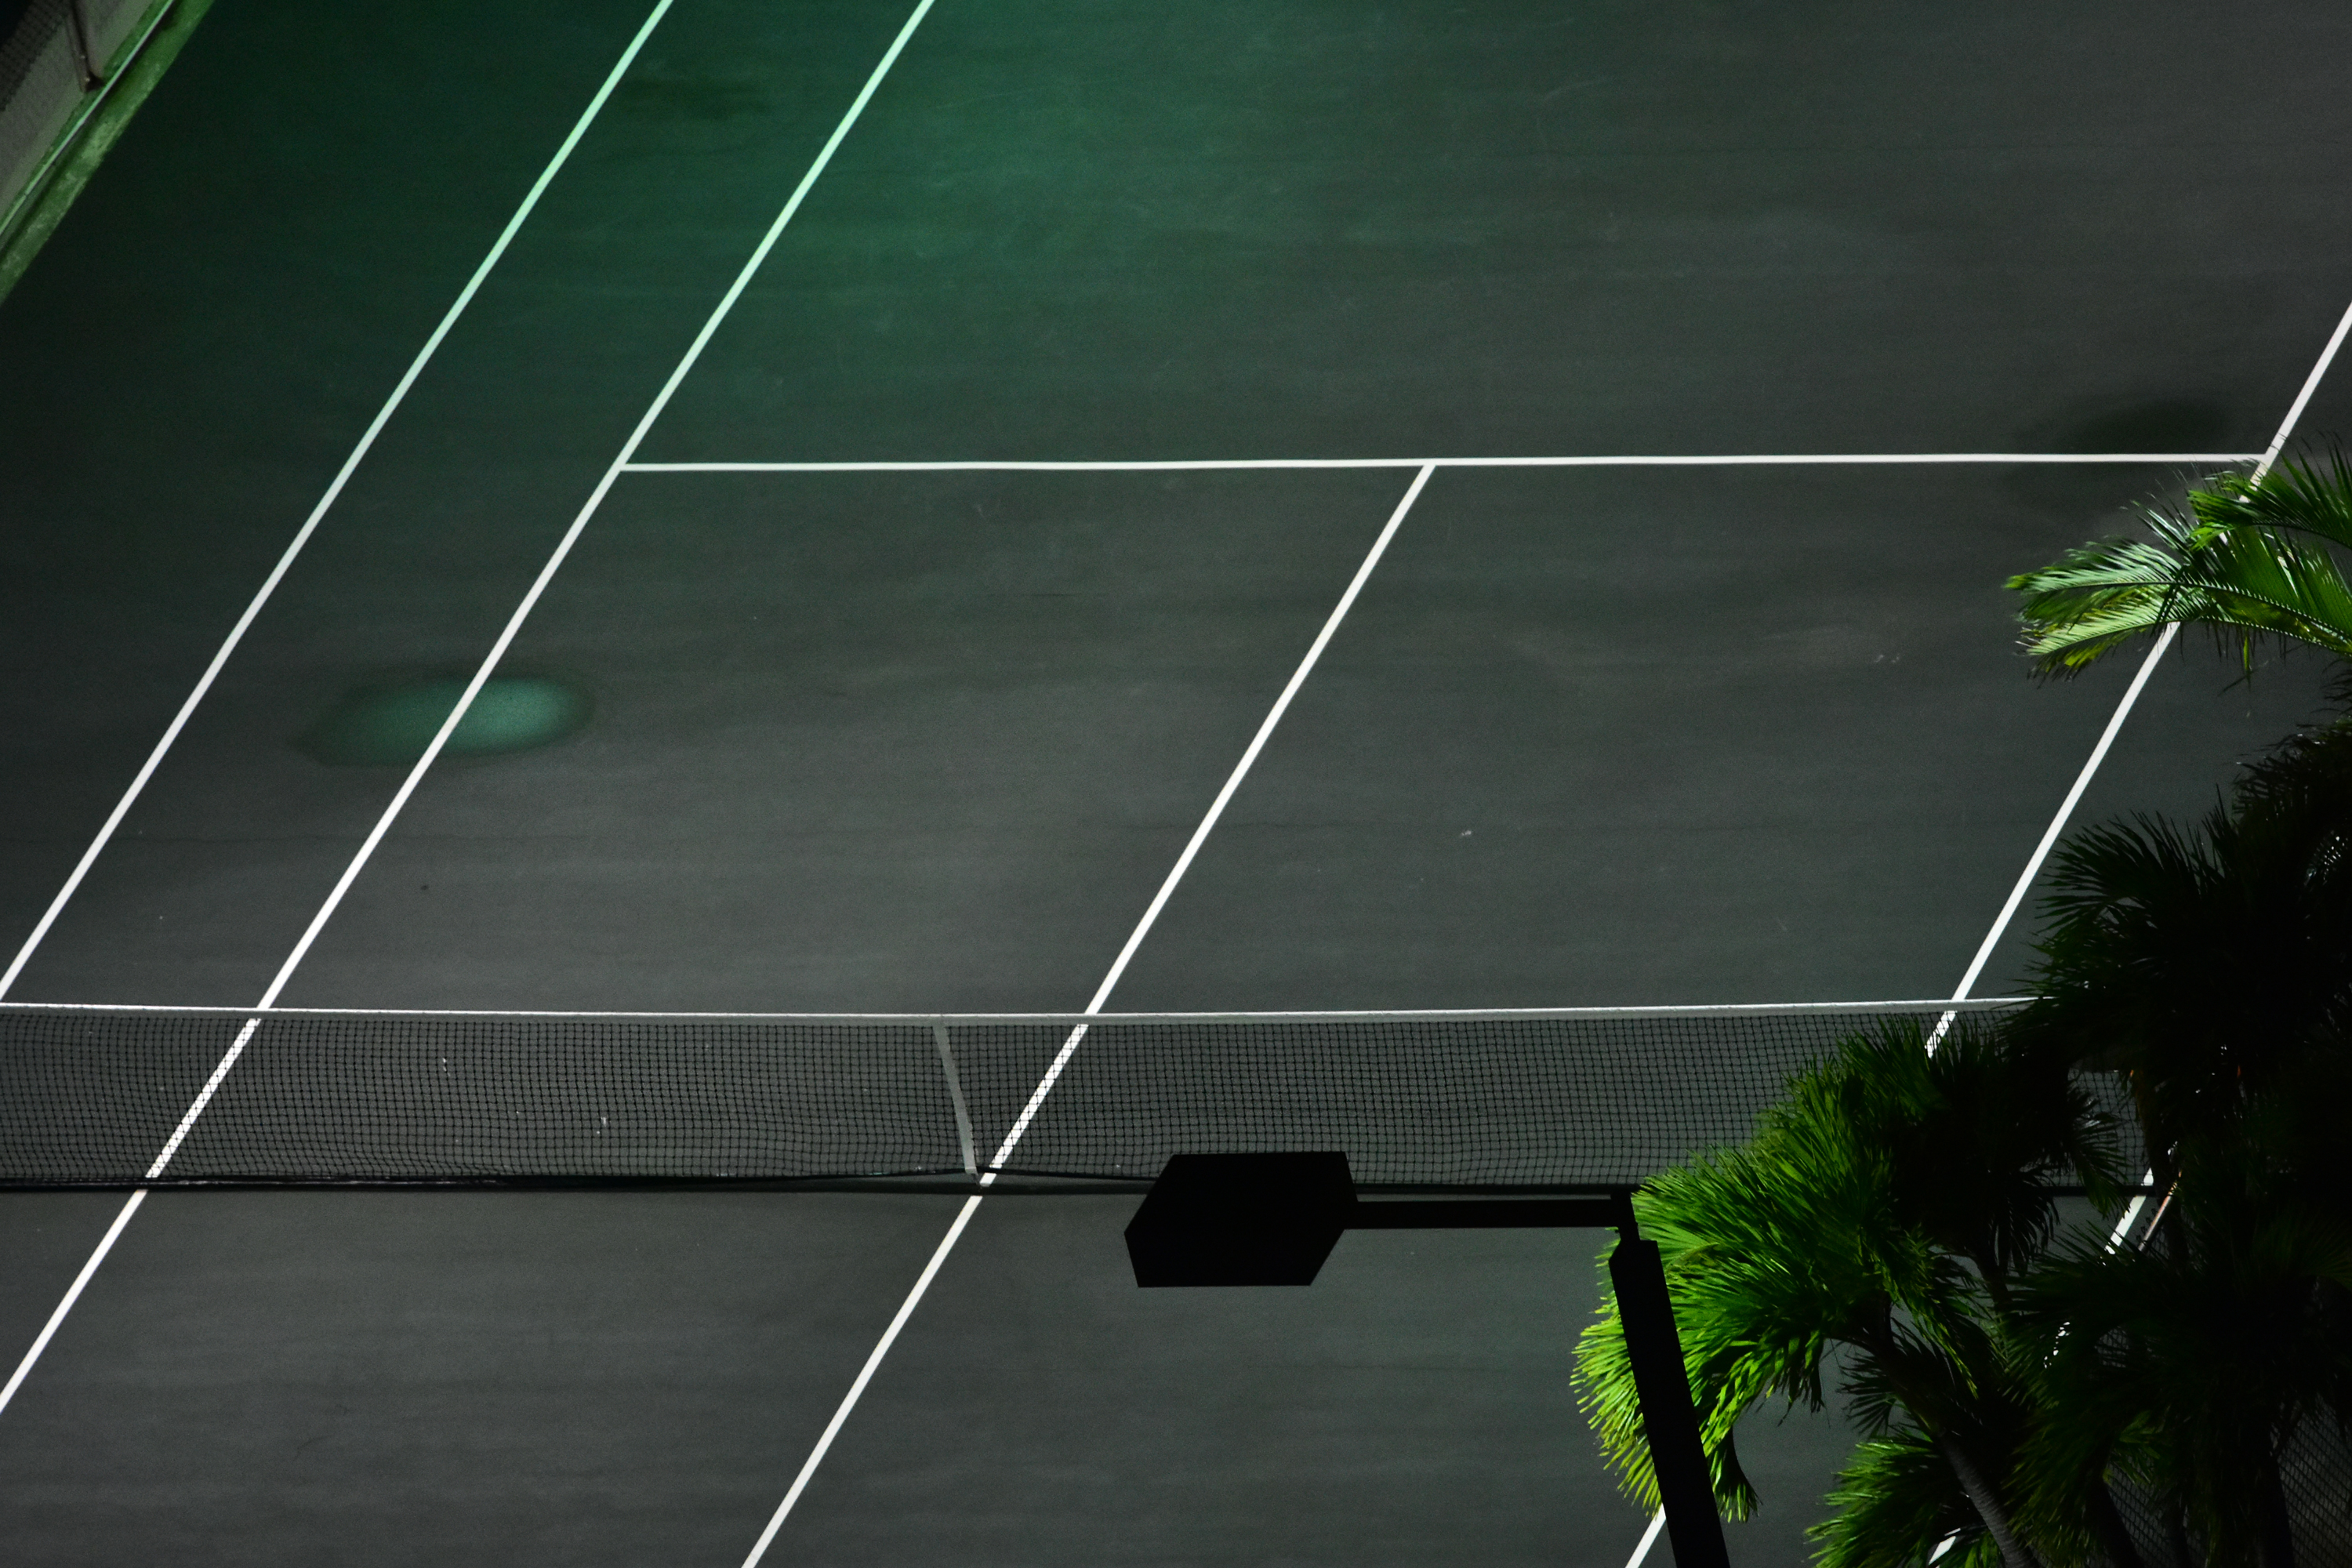 Night in Tennis Court